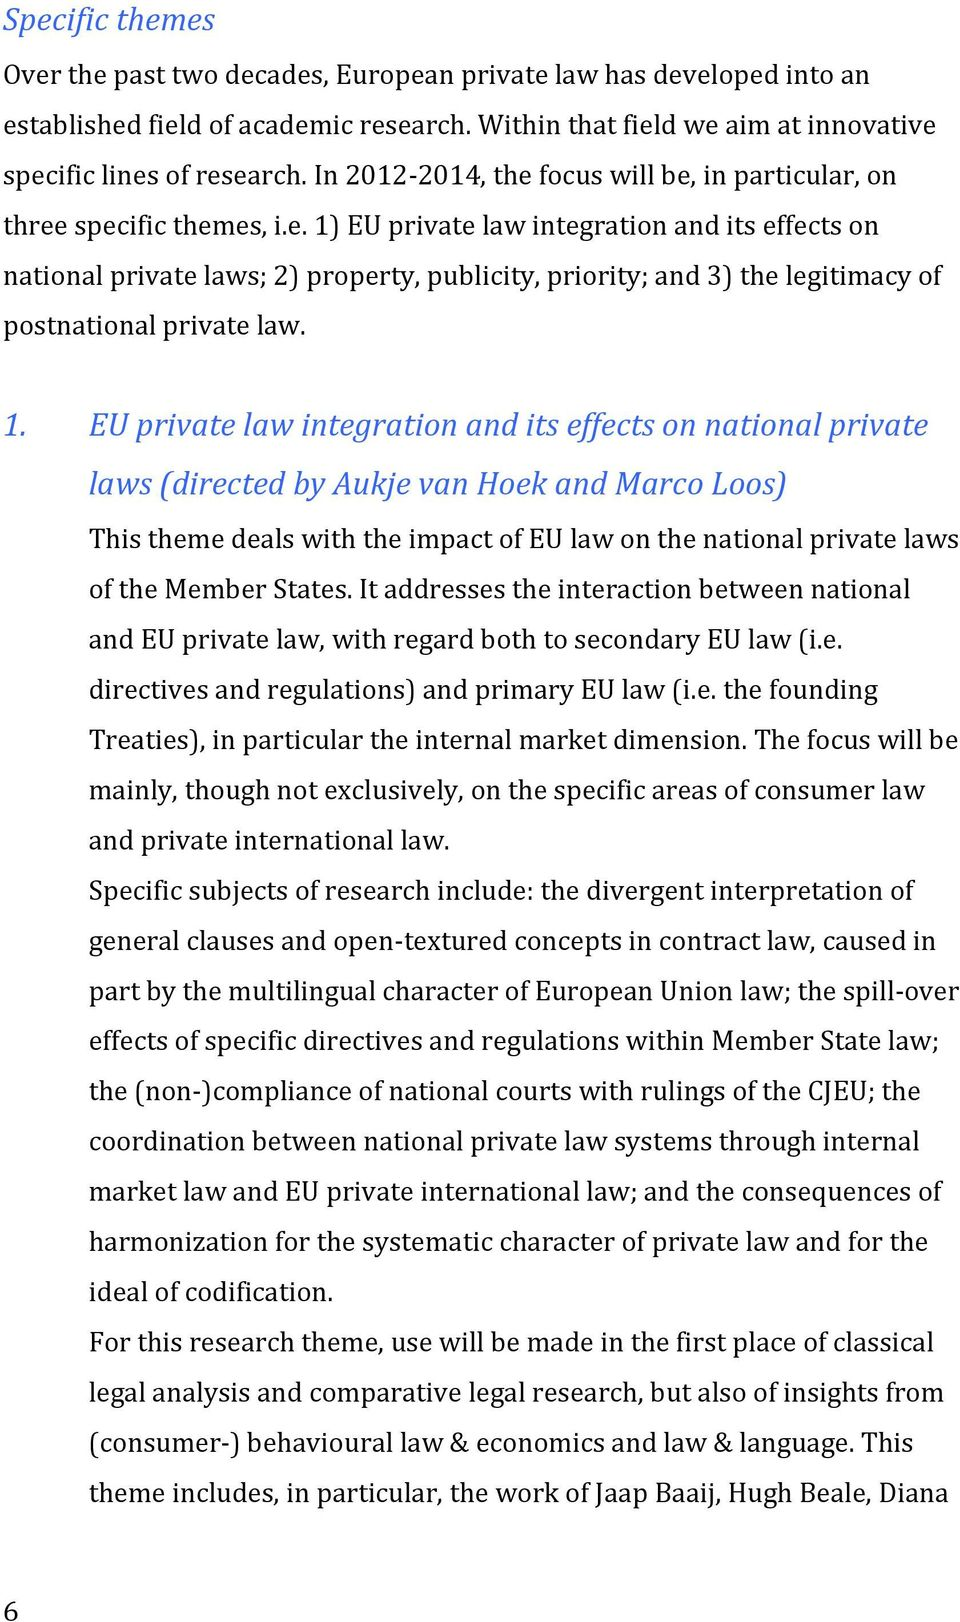 1. EU private law integration and its effects on national private laws (directed by Aukje van Hoek and Marco Loos) This theme deals with the impact of EU law on the national private laws of the